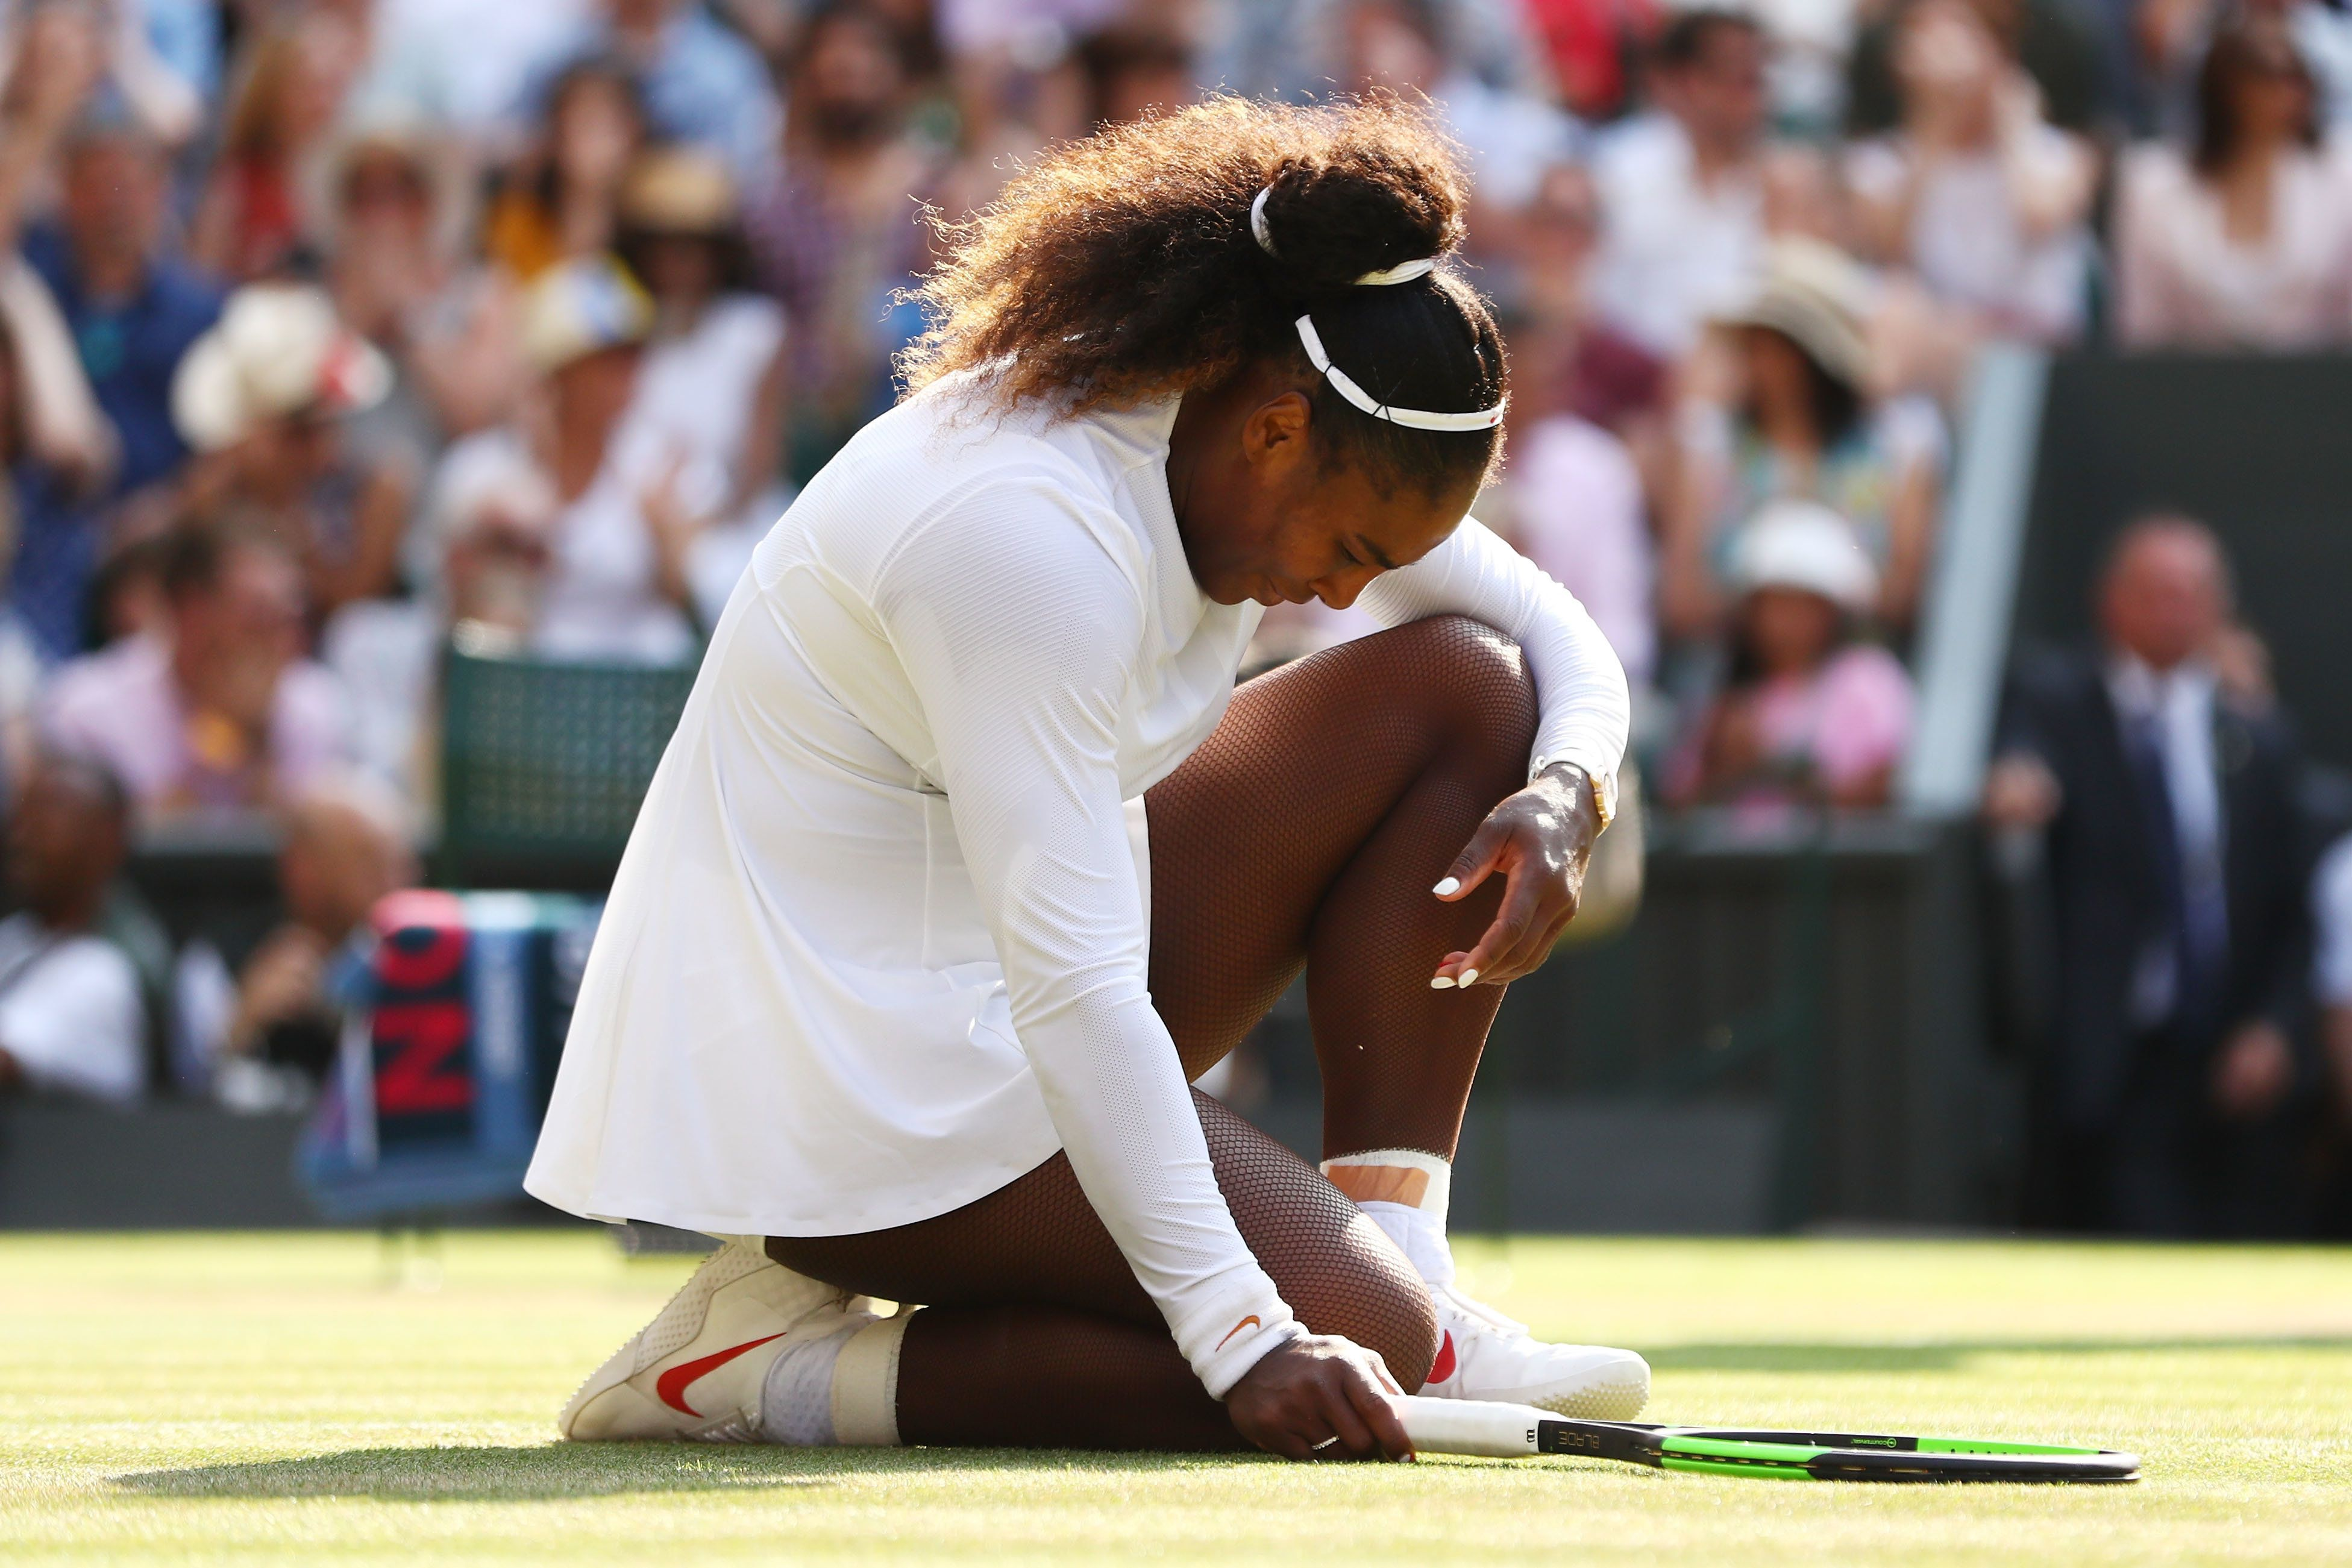 Serena Williams' Husband Pens Emotional Tribute To Her After Tough Wimbledon